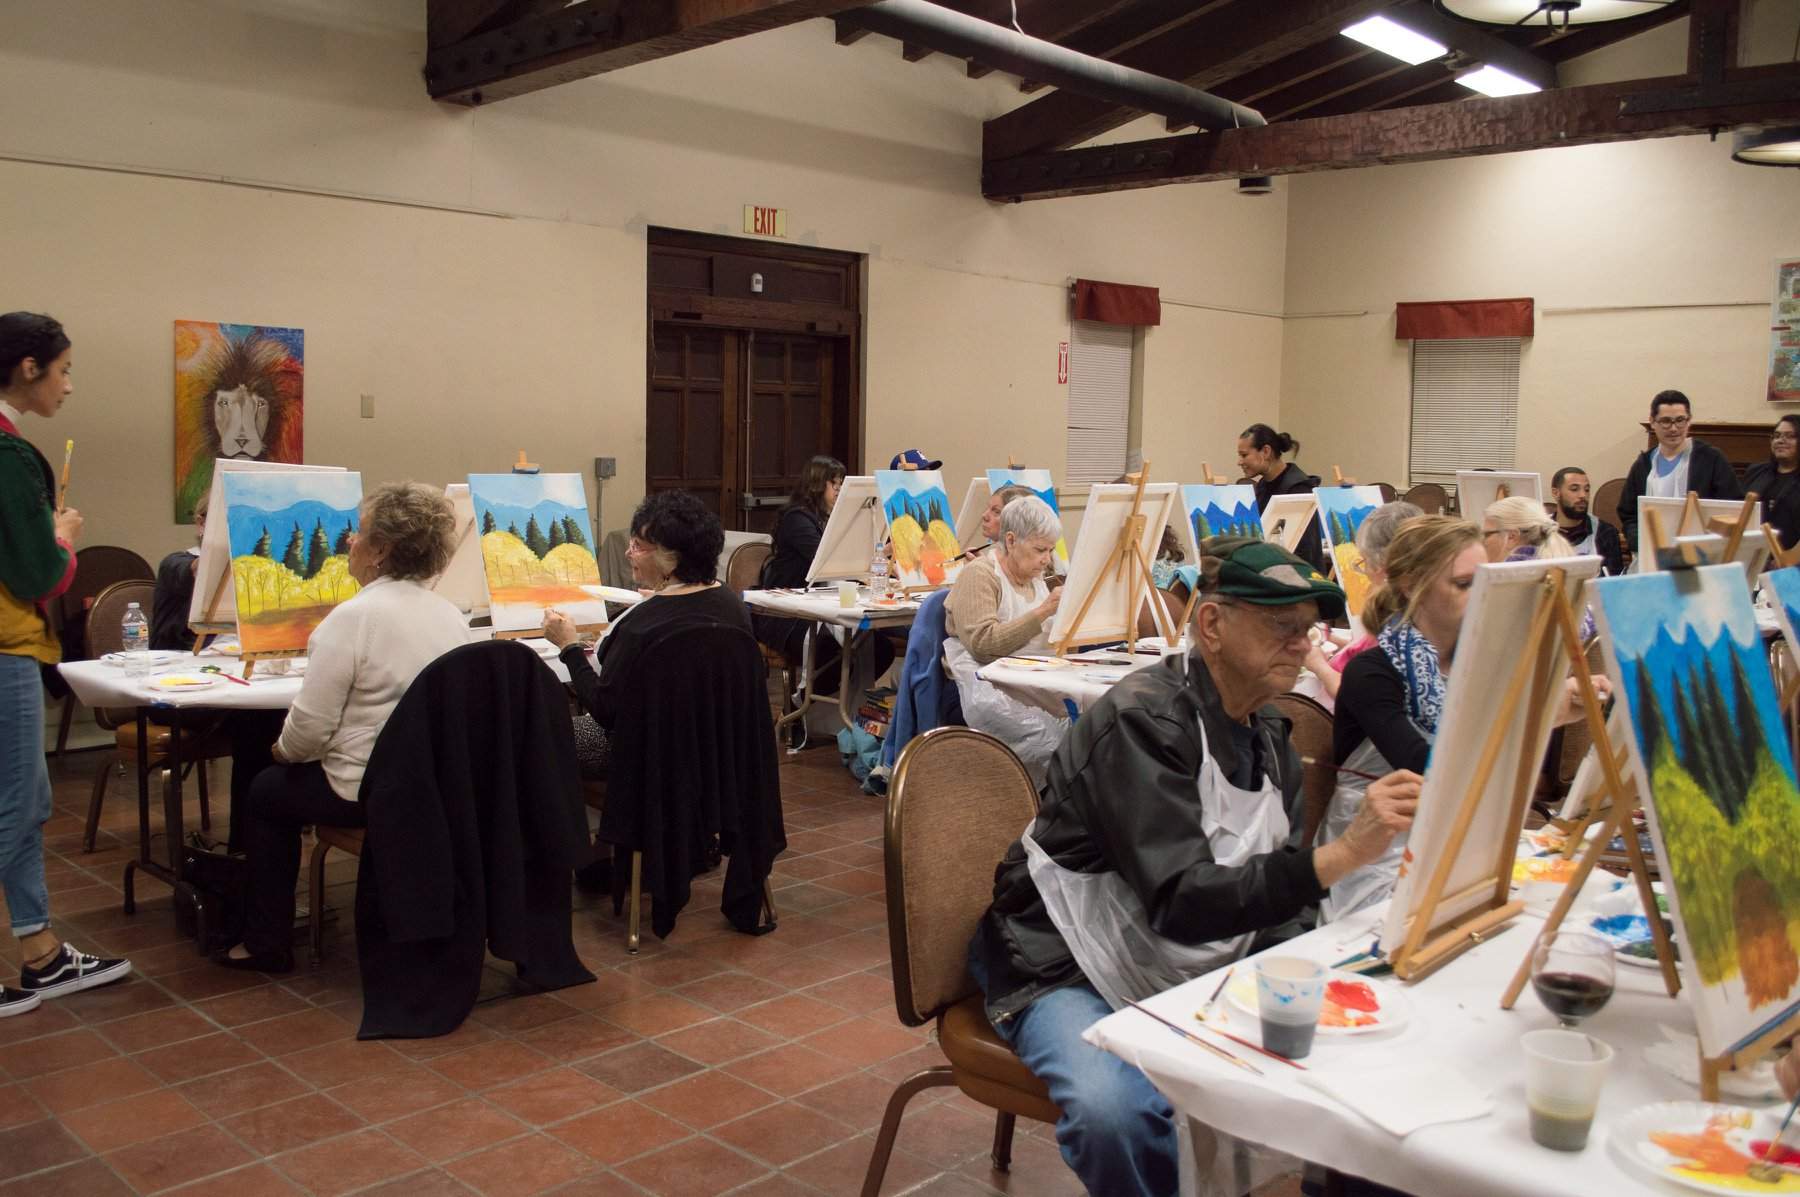 Spirits and Arts Painting Event